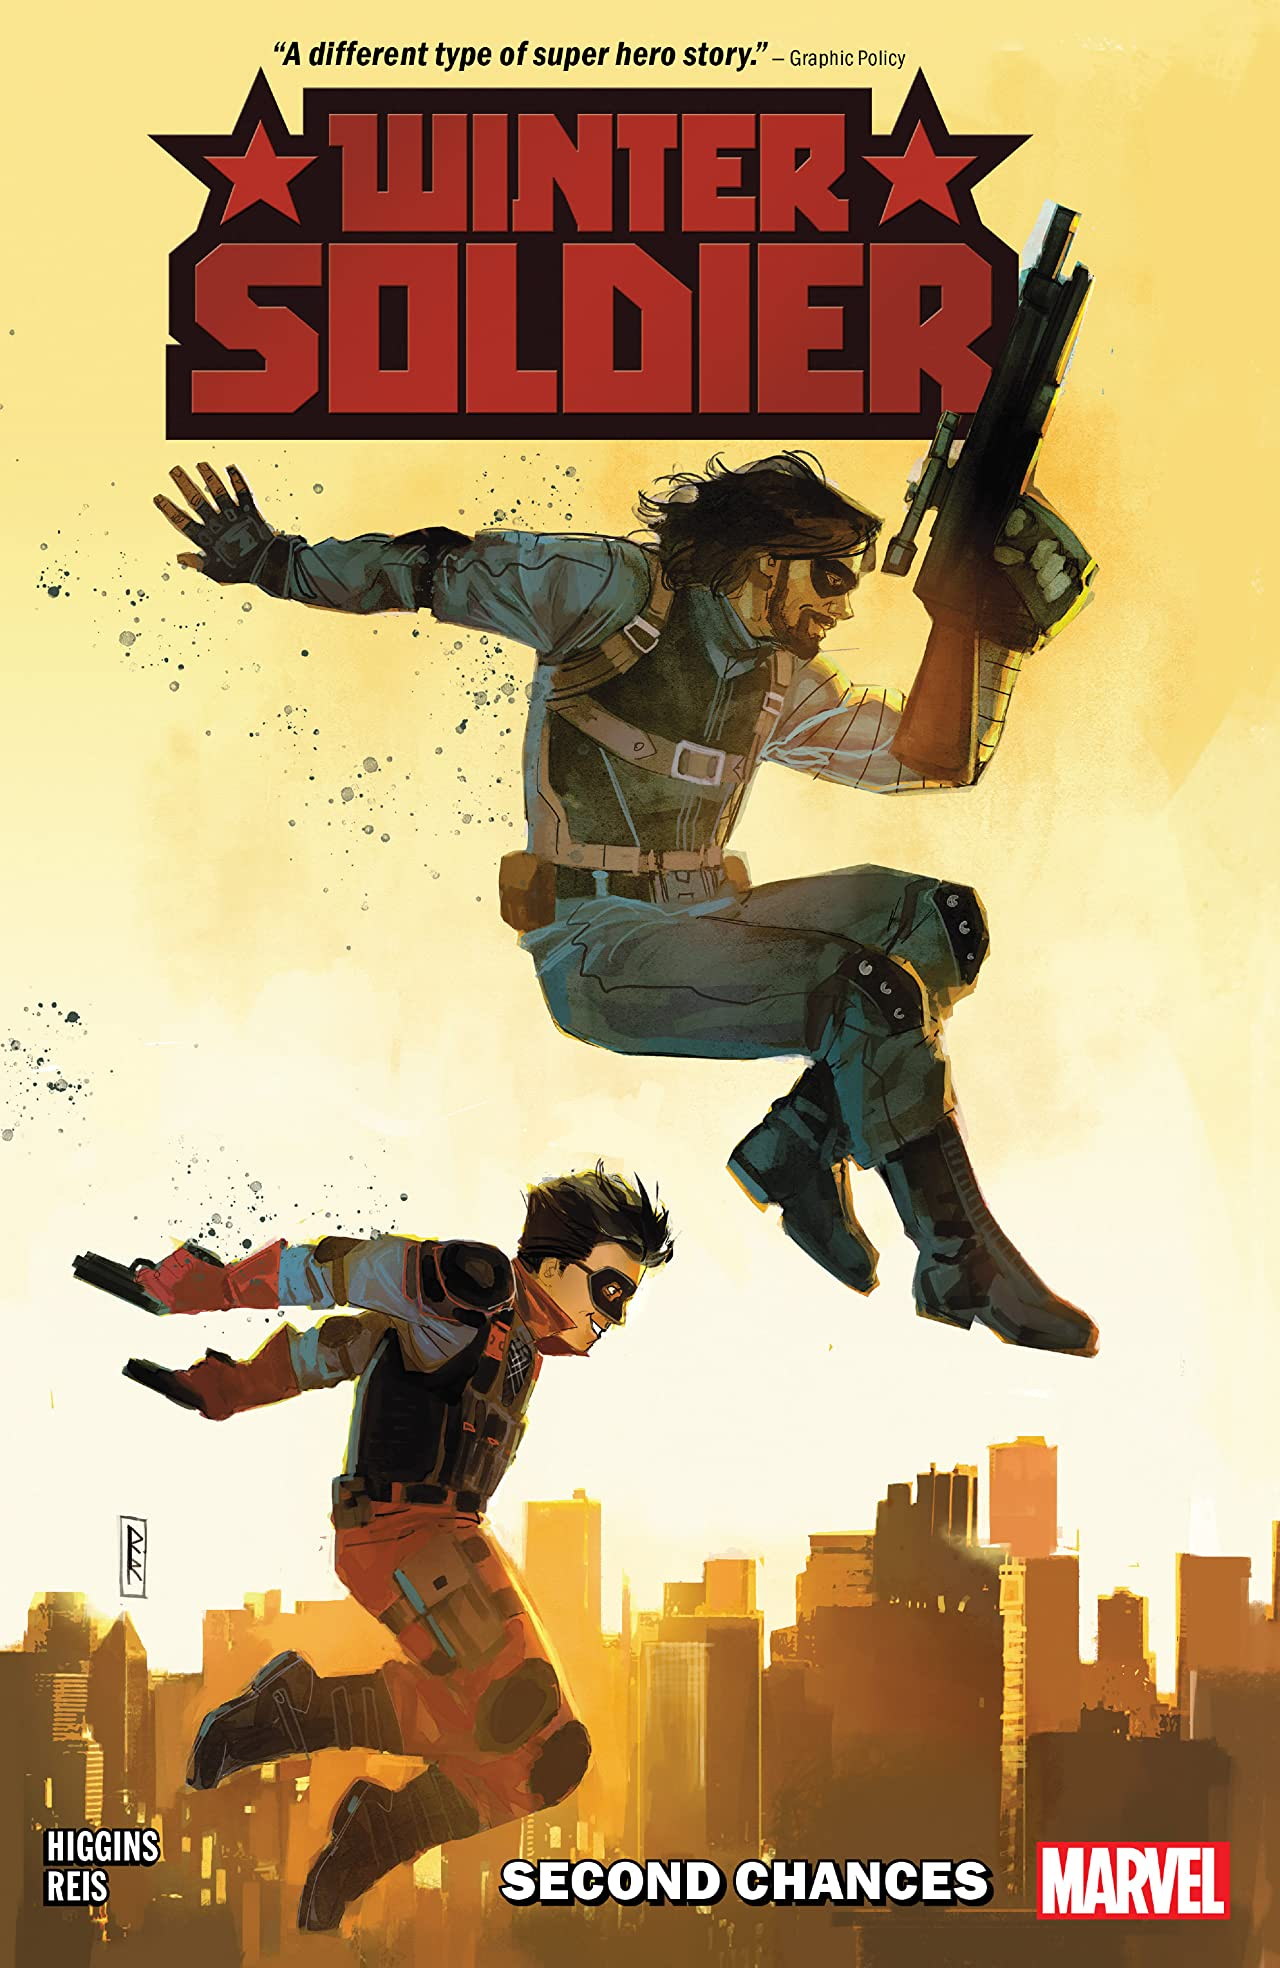 Winter Soldier: Second Chances (2019) cover, published by Marvel Comics